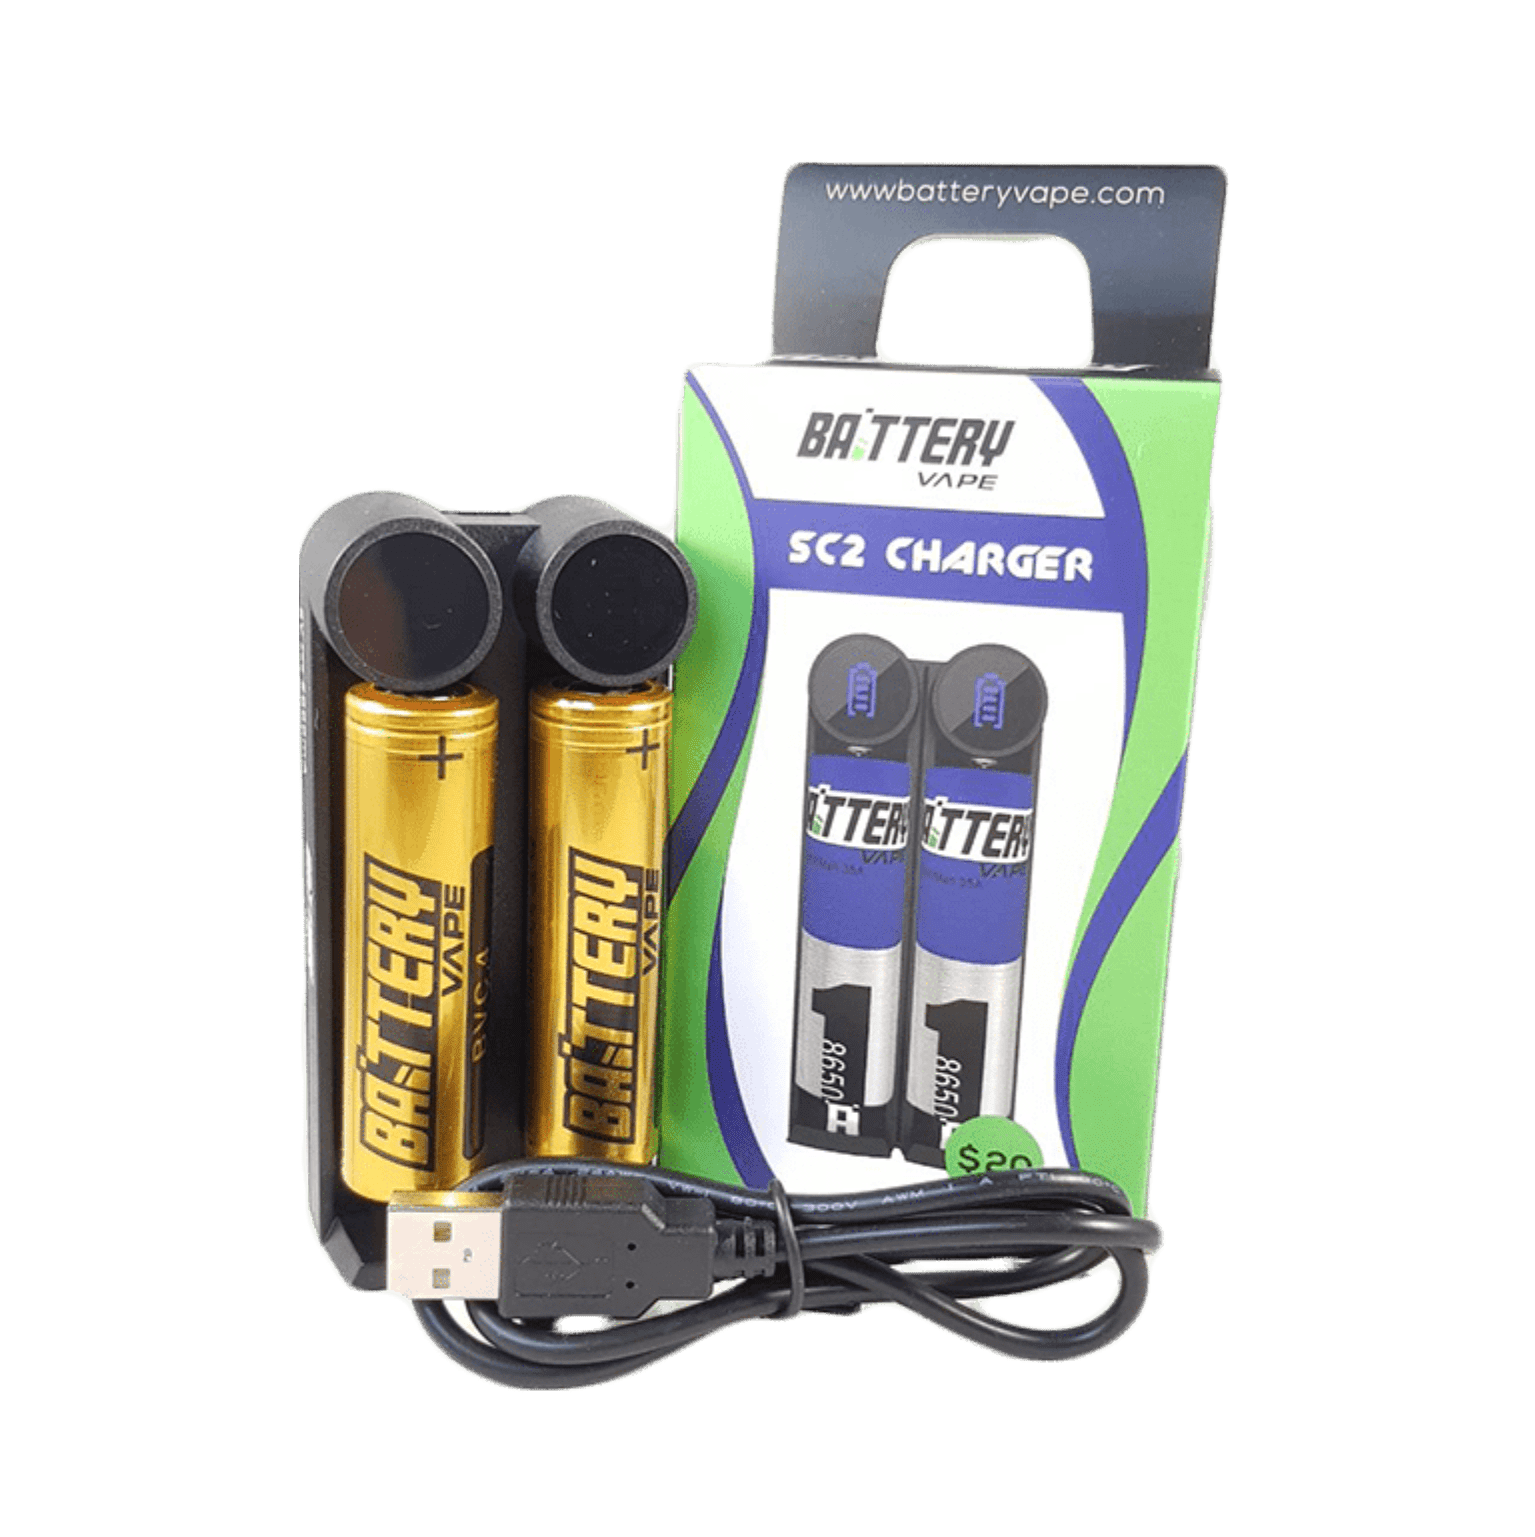 bv-sc2-charger-1-1-min